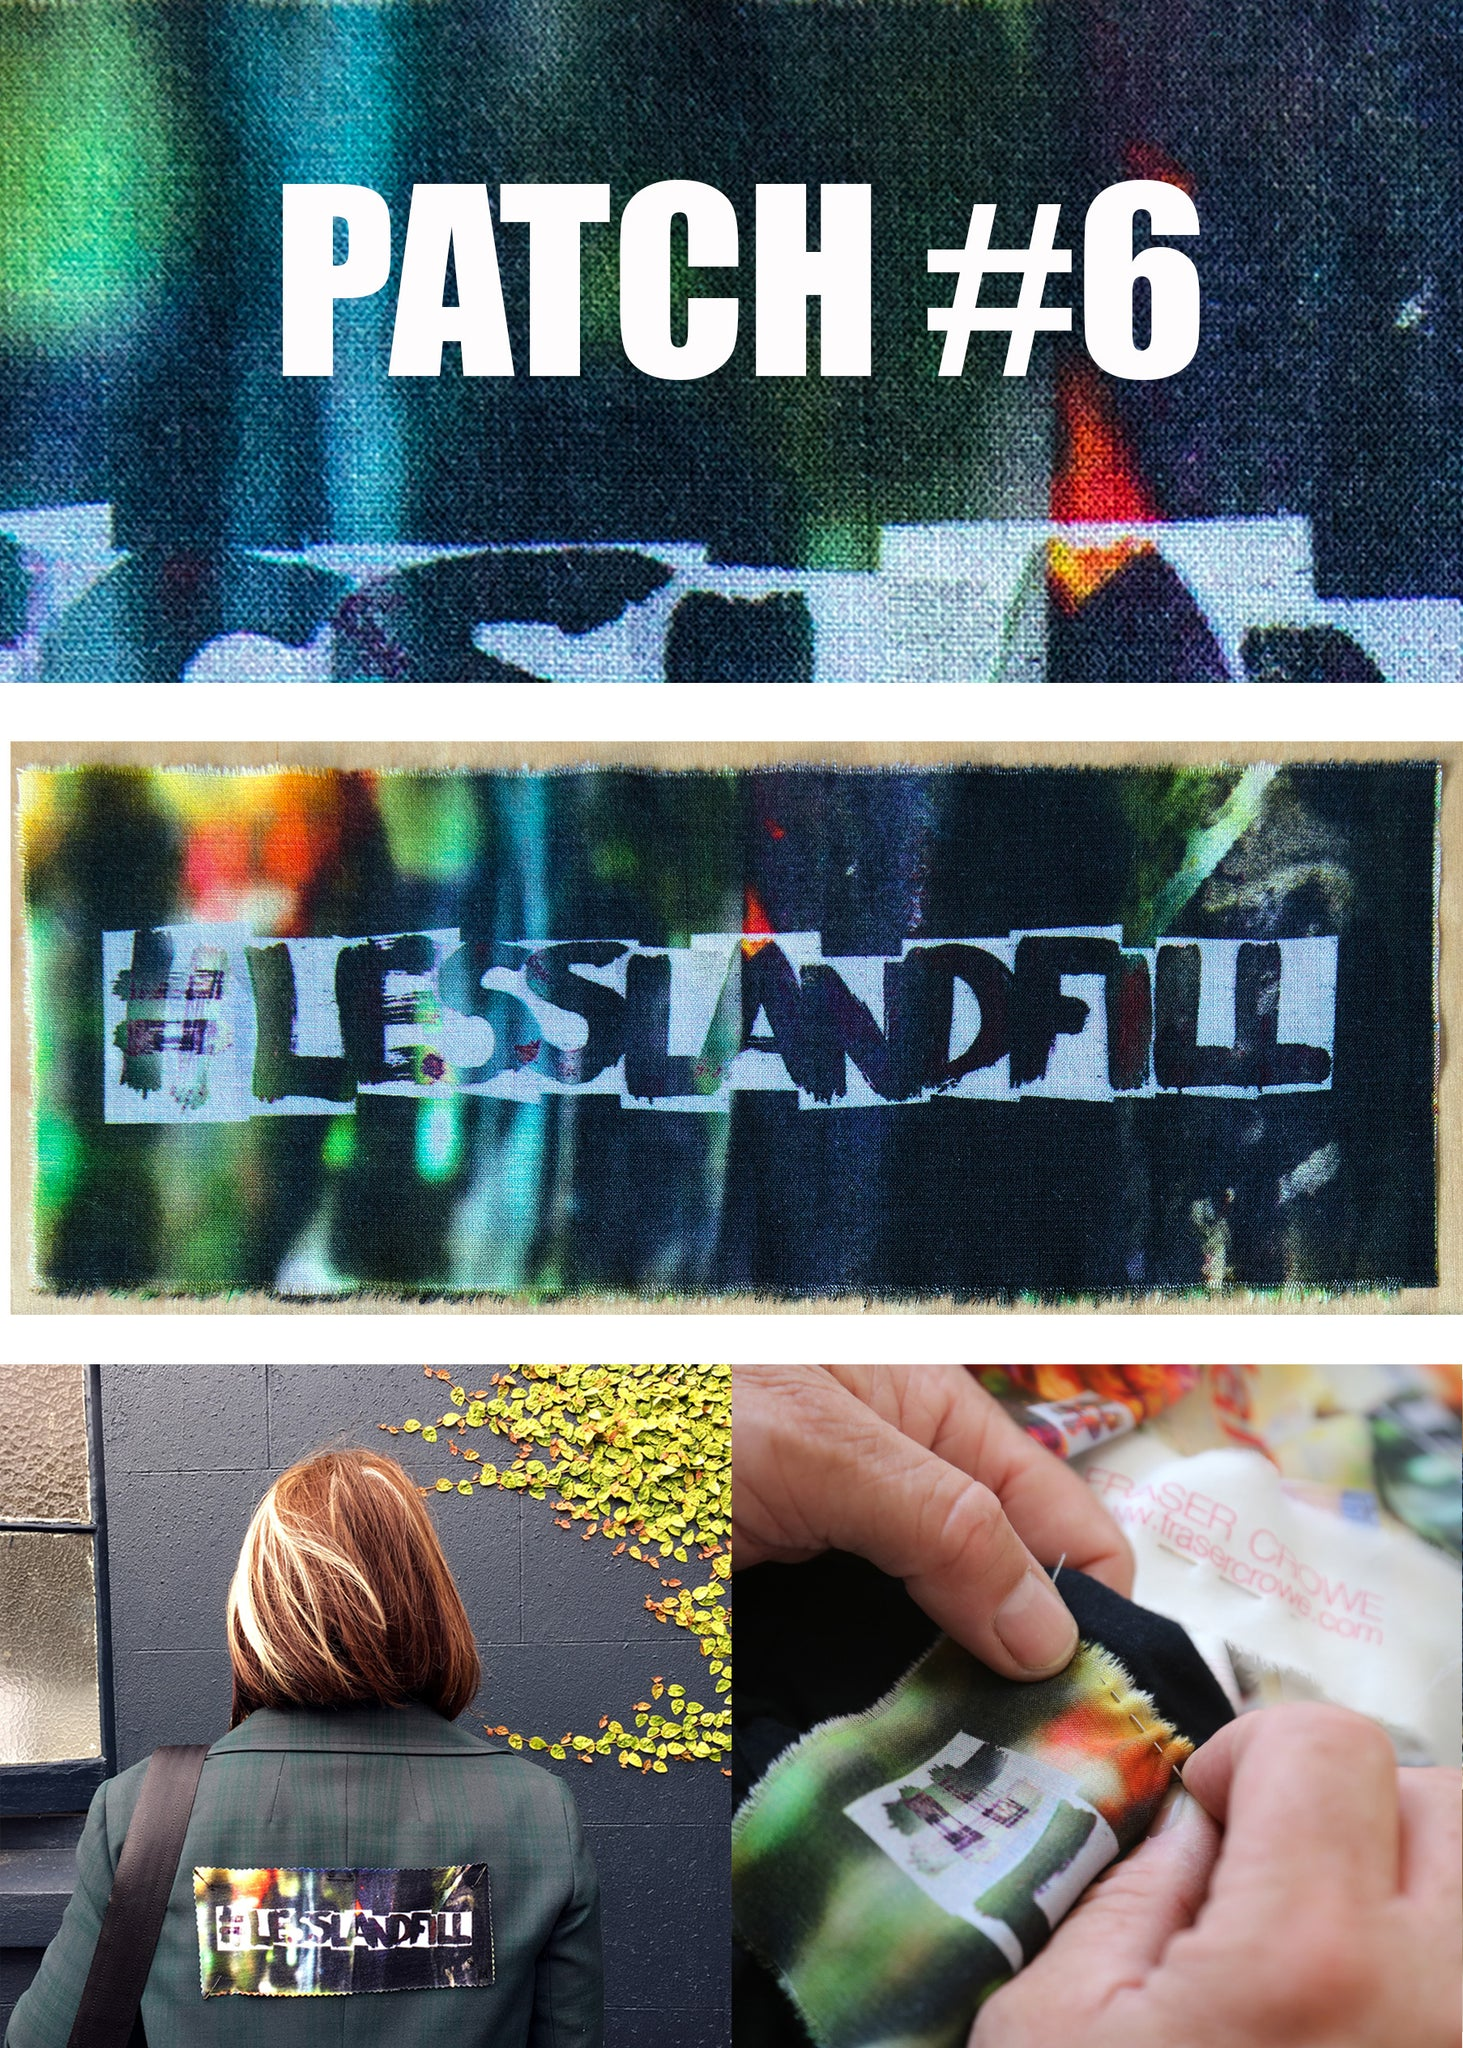 #lesslandfill Patch 6 details -ethical fashion, sustainable fashion, designer clothes, plus size clothing, textile print clothing, luxury online fashion, slow fashion